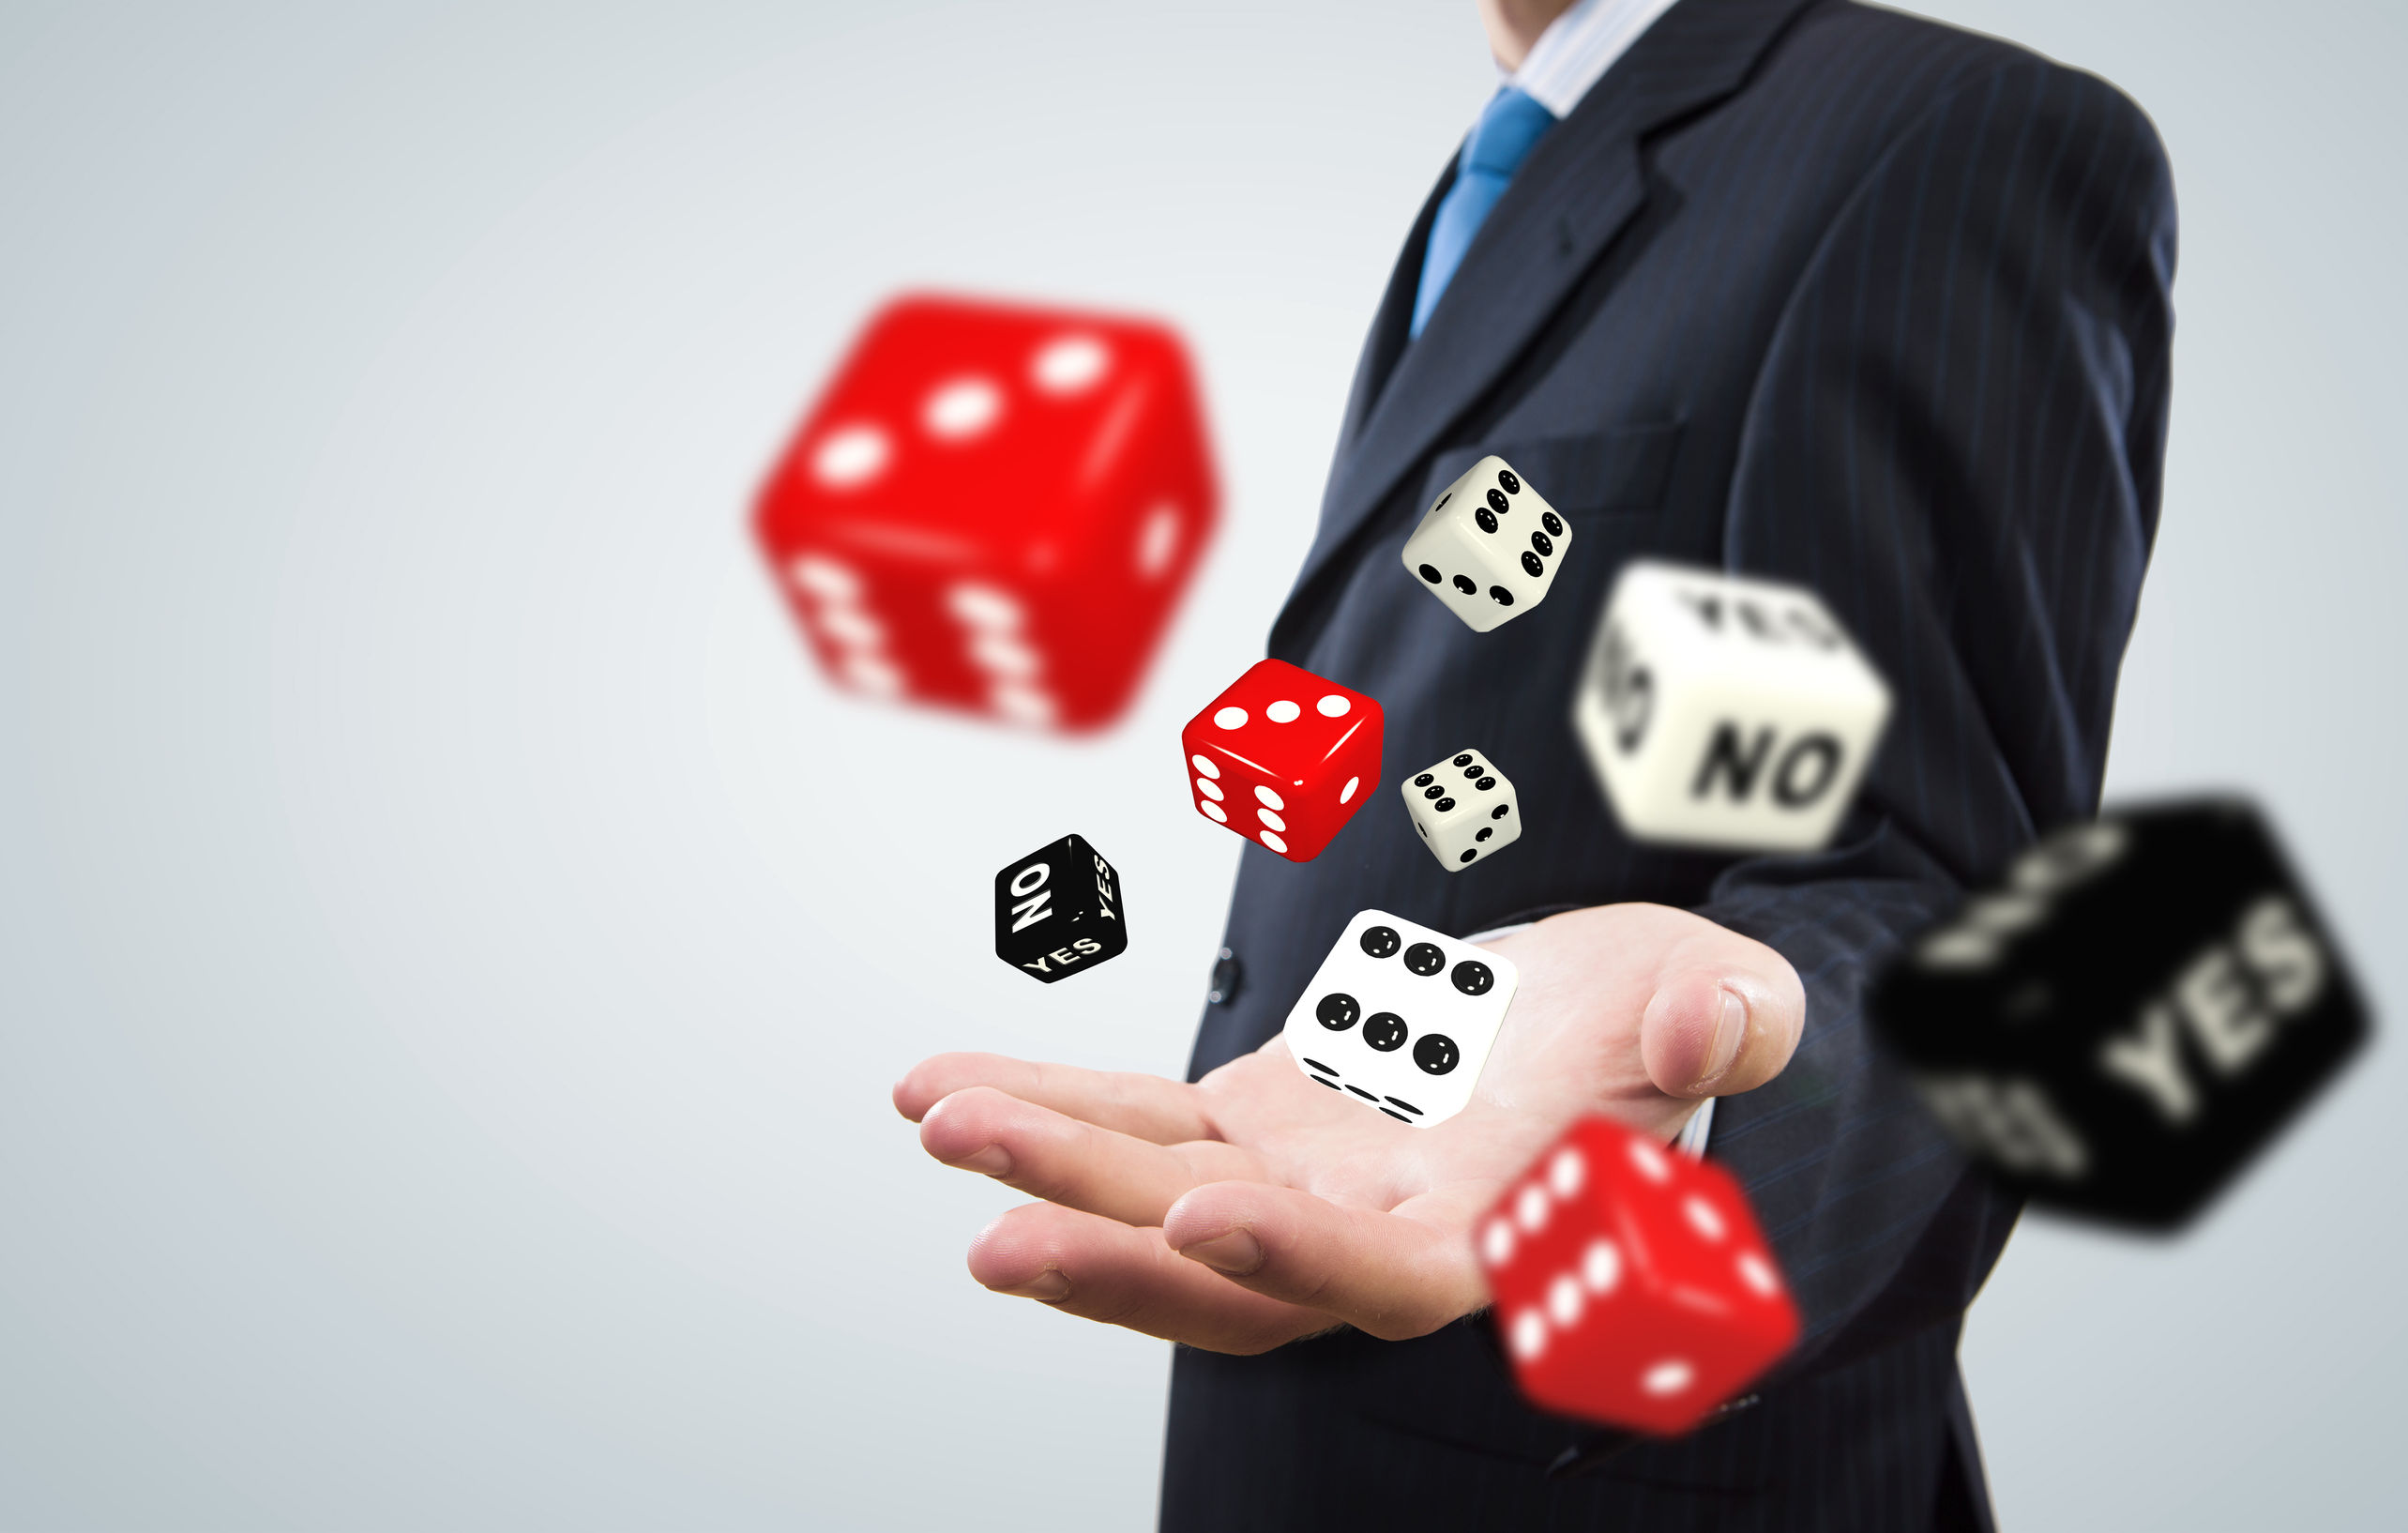 Is gambling harmful for Australians?